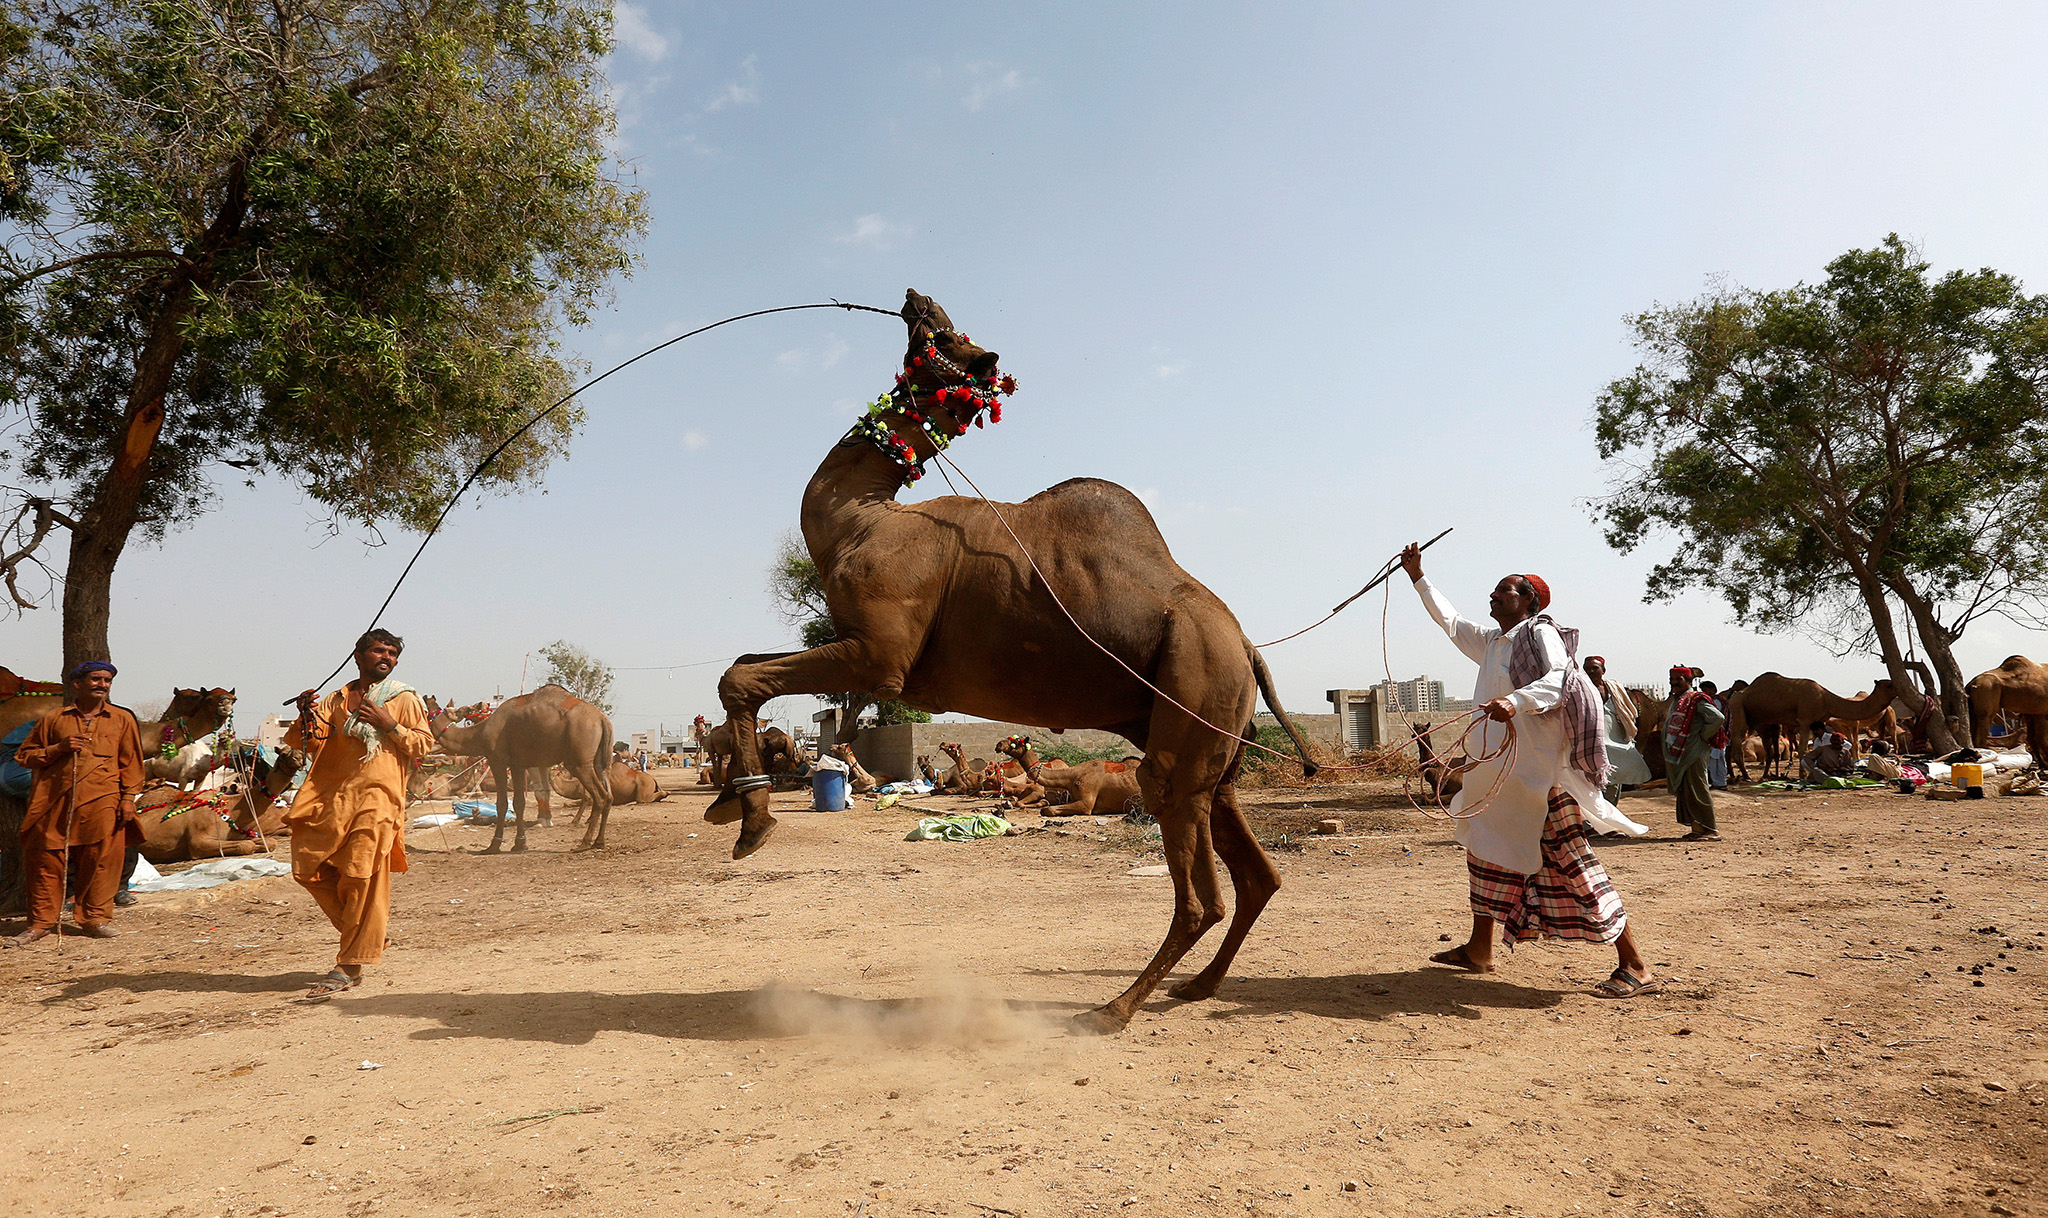 A camel held in ropes by its traders performs a dance to attract customers at a makeshift cattle market, ahead of the Eid al-Adha festival in Karachi, Pakistan September